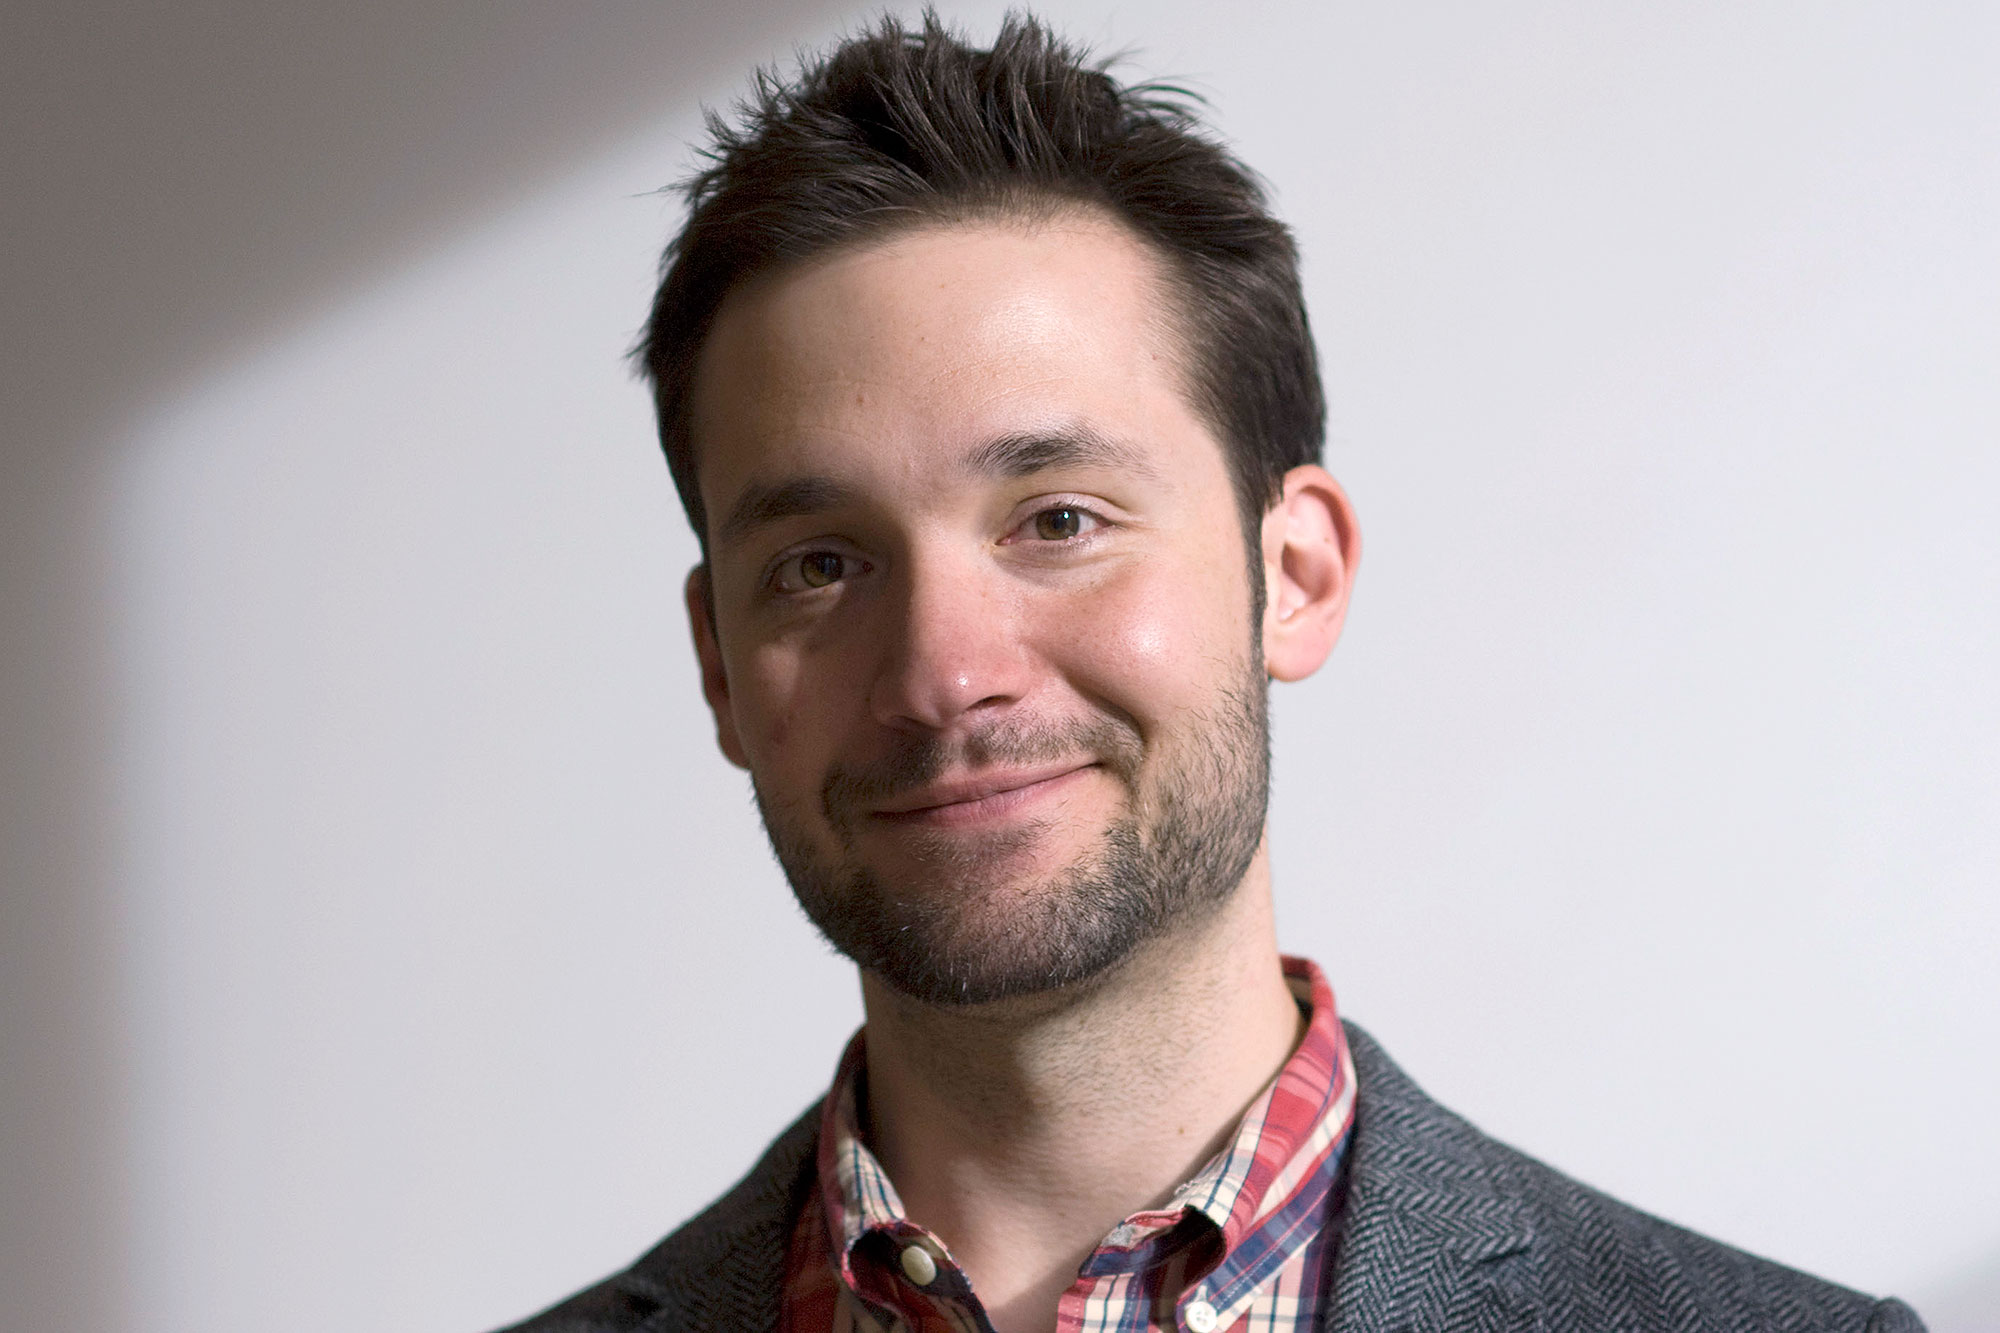 USA, NEW YORK CITY--Alexis Ohanian, is an Armenian American internet entrepreneur, activist and investor based in Brooklyn, New York, best known for co-founding the social news website reddit, helping launch travel search website hipmunk, and starting social enterprise breadpig. (Photo by Neville Elder/Corbis via Getty Images)